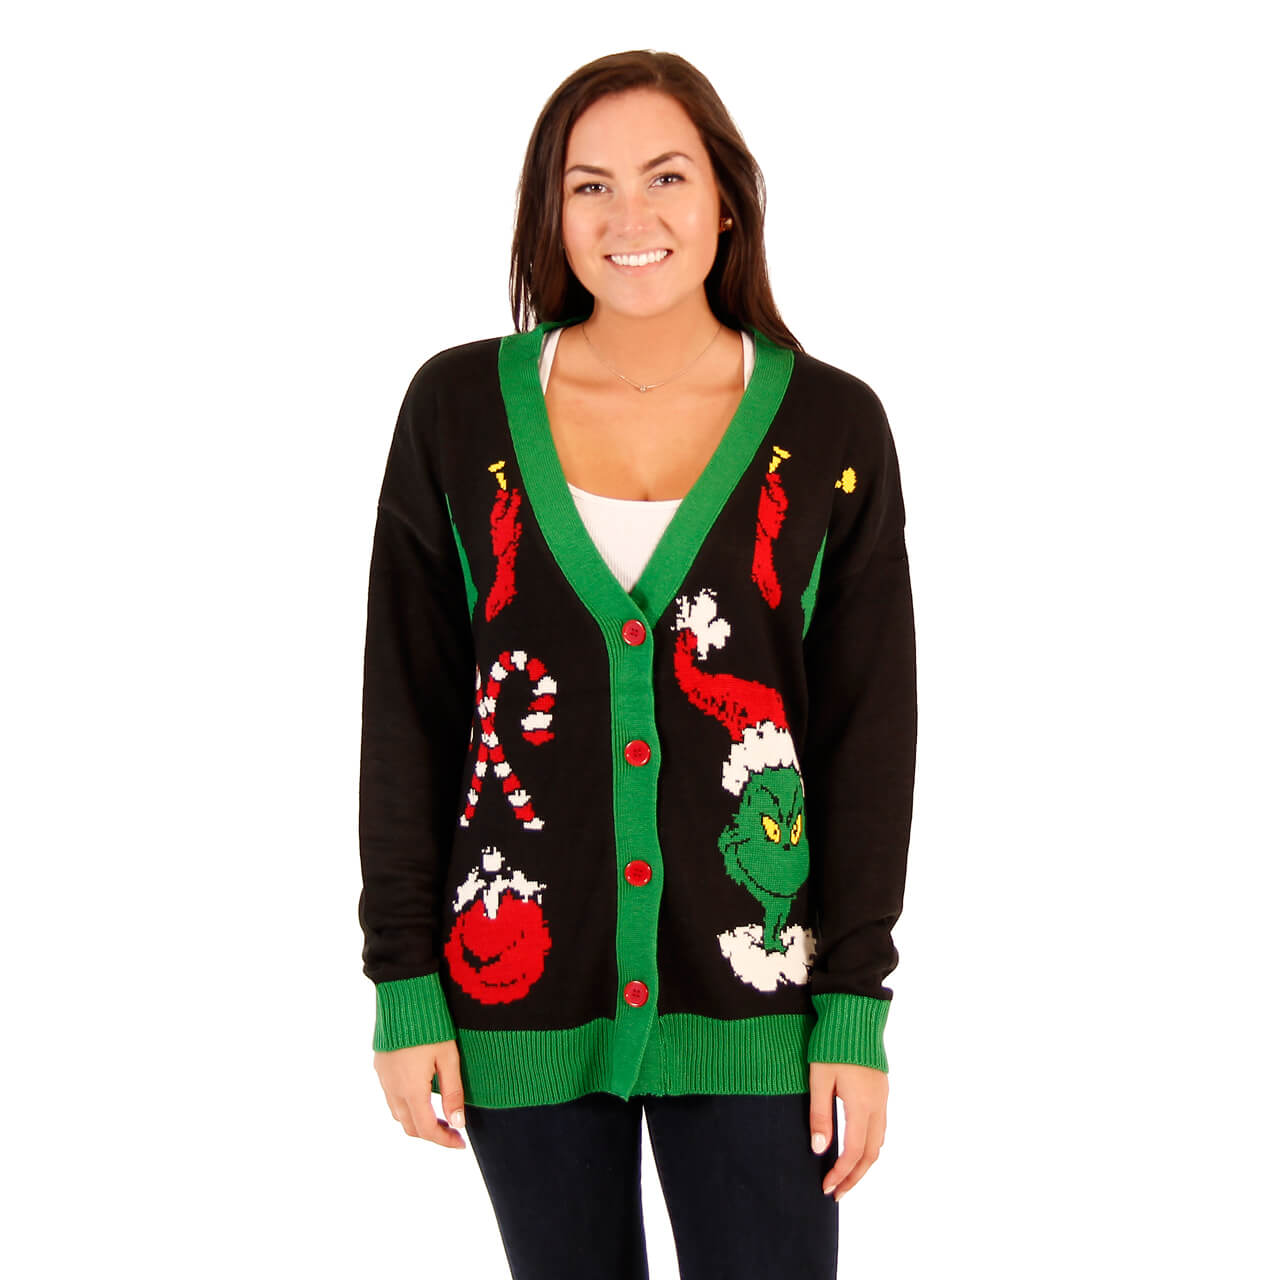 Vintage Christmas Sweaters Cardigan for Women Ladies Girls Teens & Plus Size. v28 Christmas Sweater Cardigan Ugly Women Girls Vintage Fun Knit Xmas Sweater. by v $ - $ $ 9 $ 19 99 Prime. FREE Shipping on eligible orders. Some sizes/colors are Prime eligible. out of .